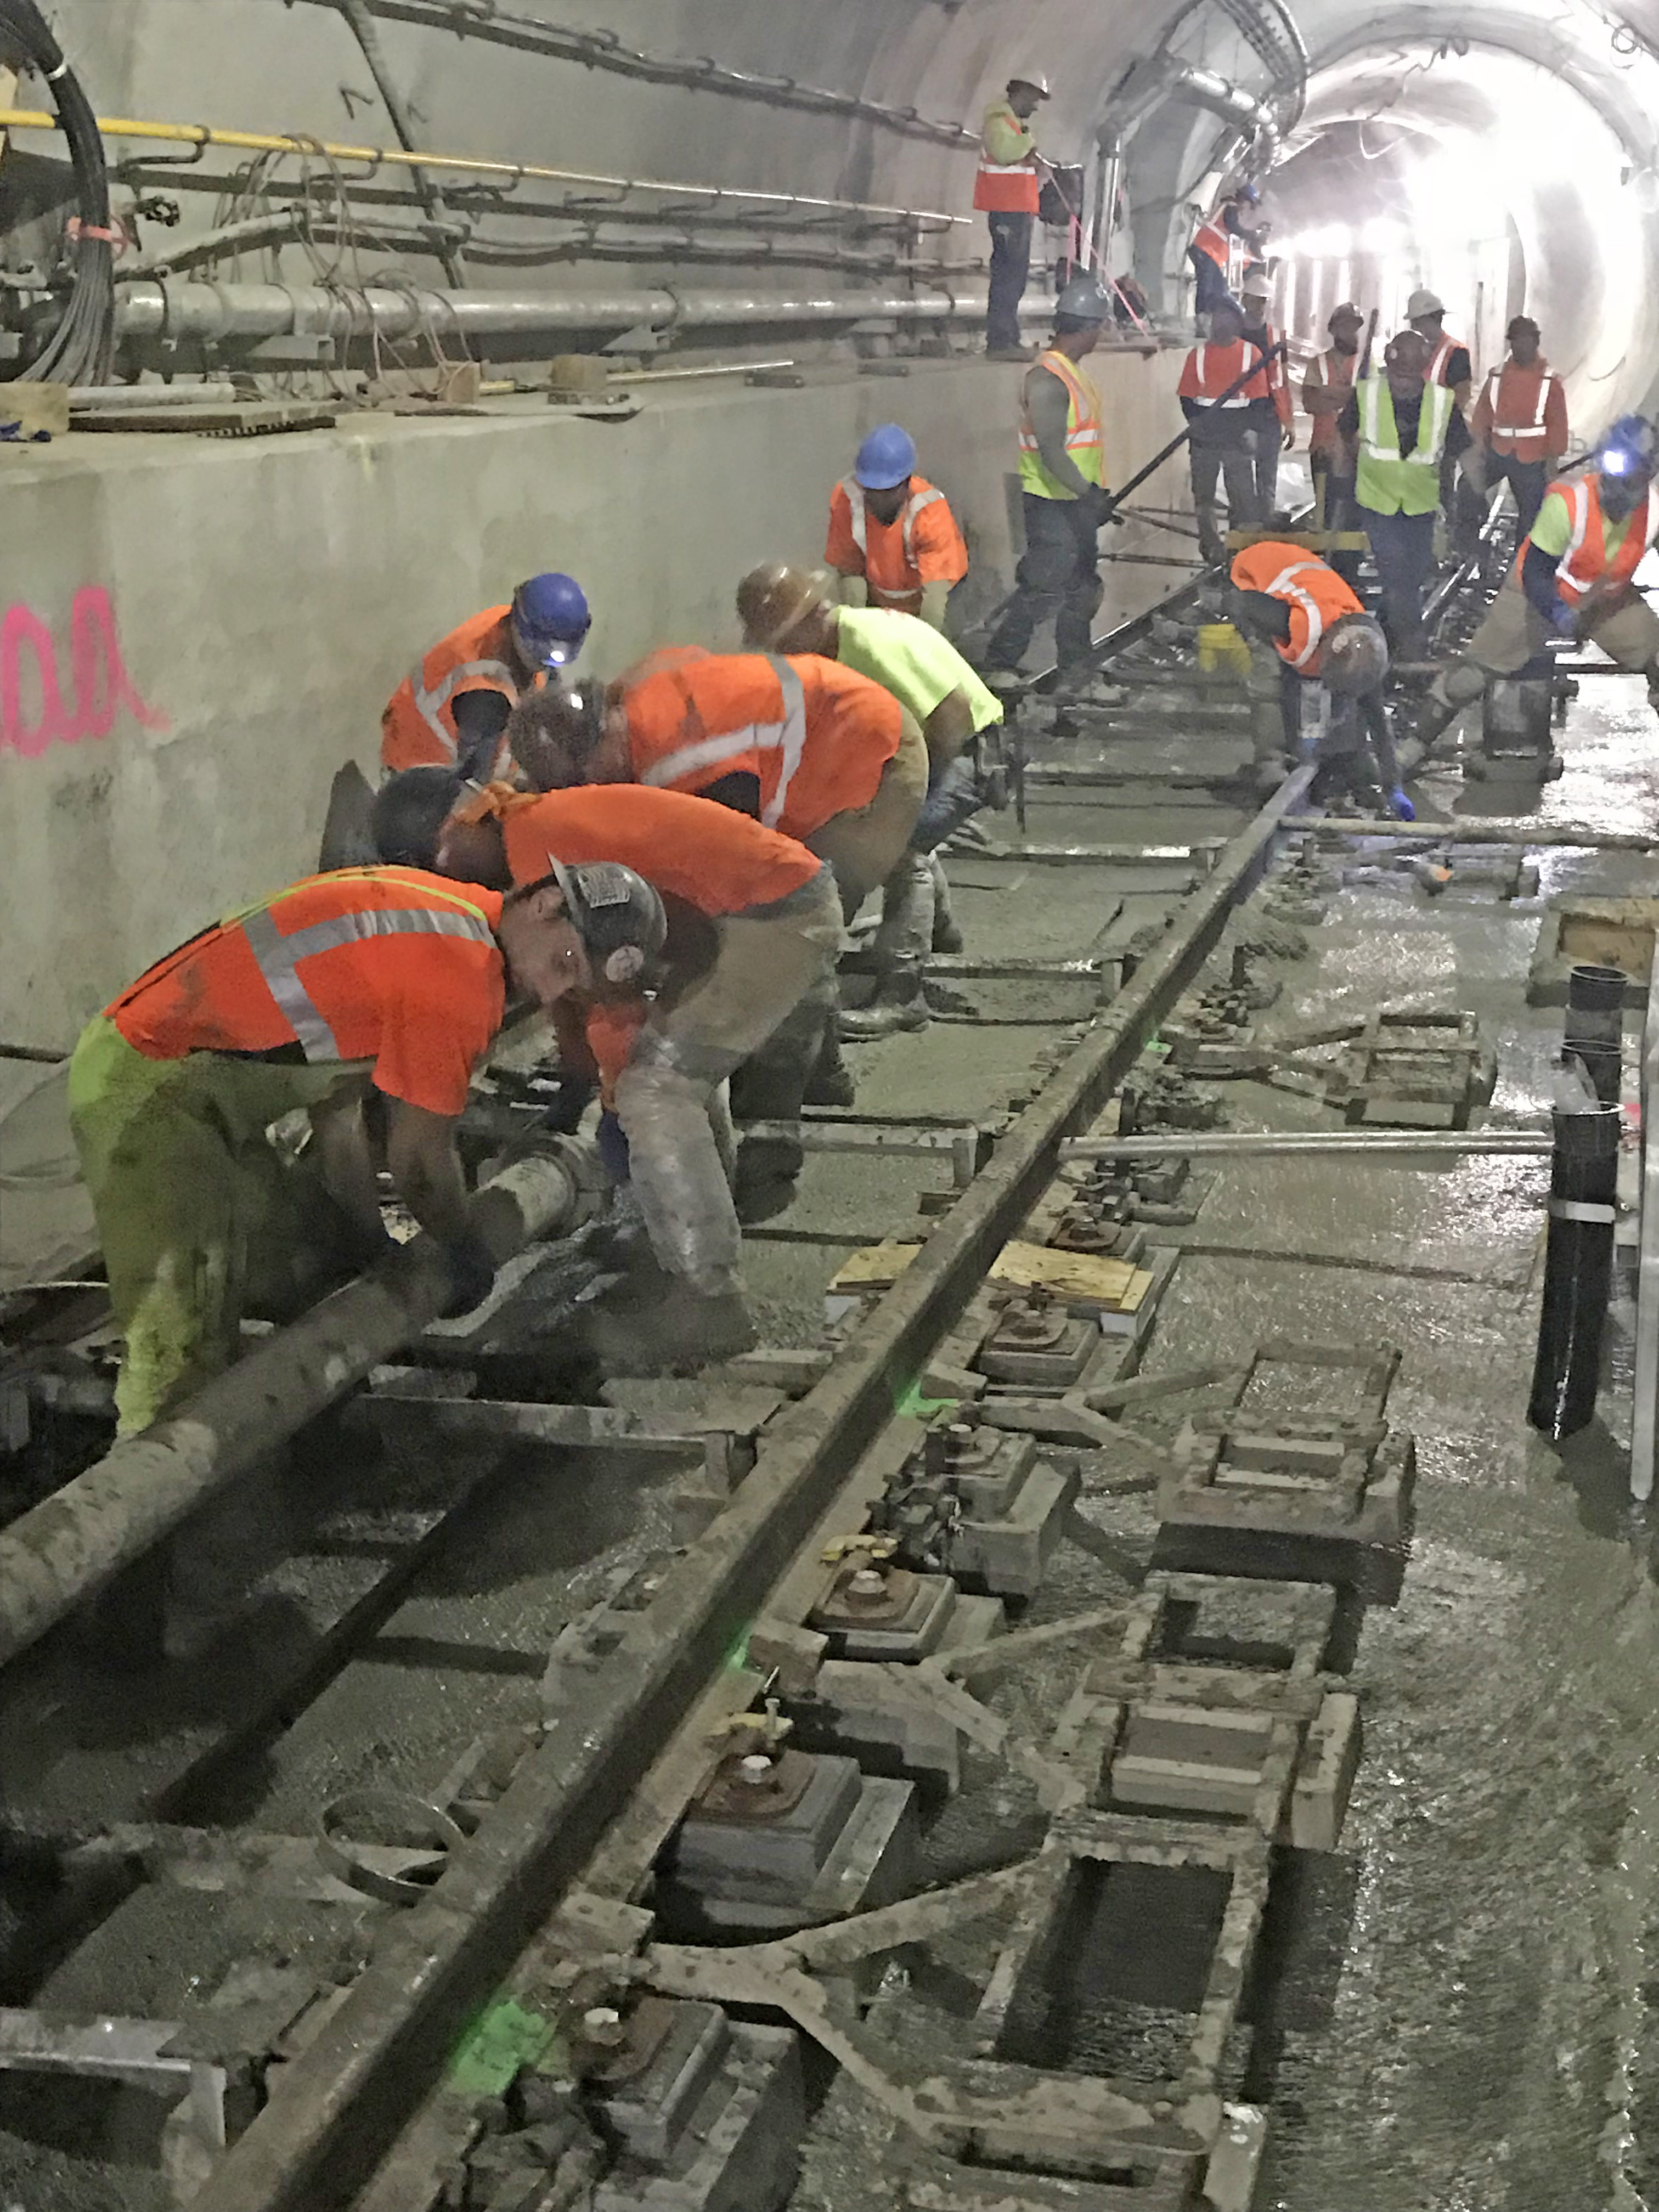 East Side Access 05-29-19